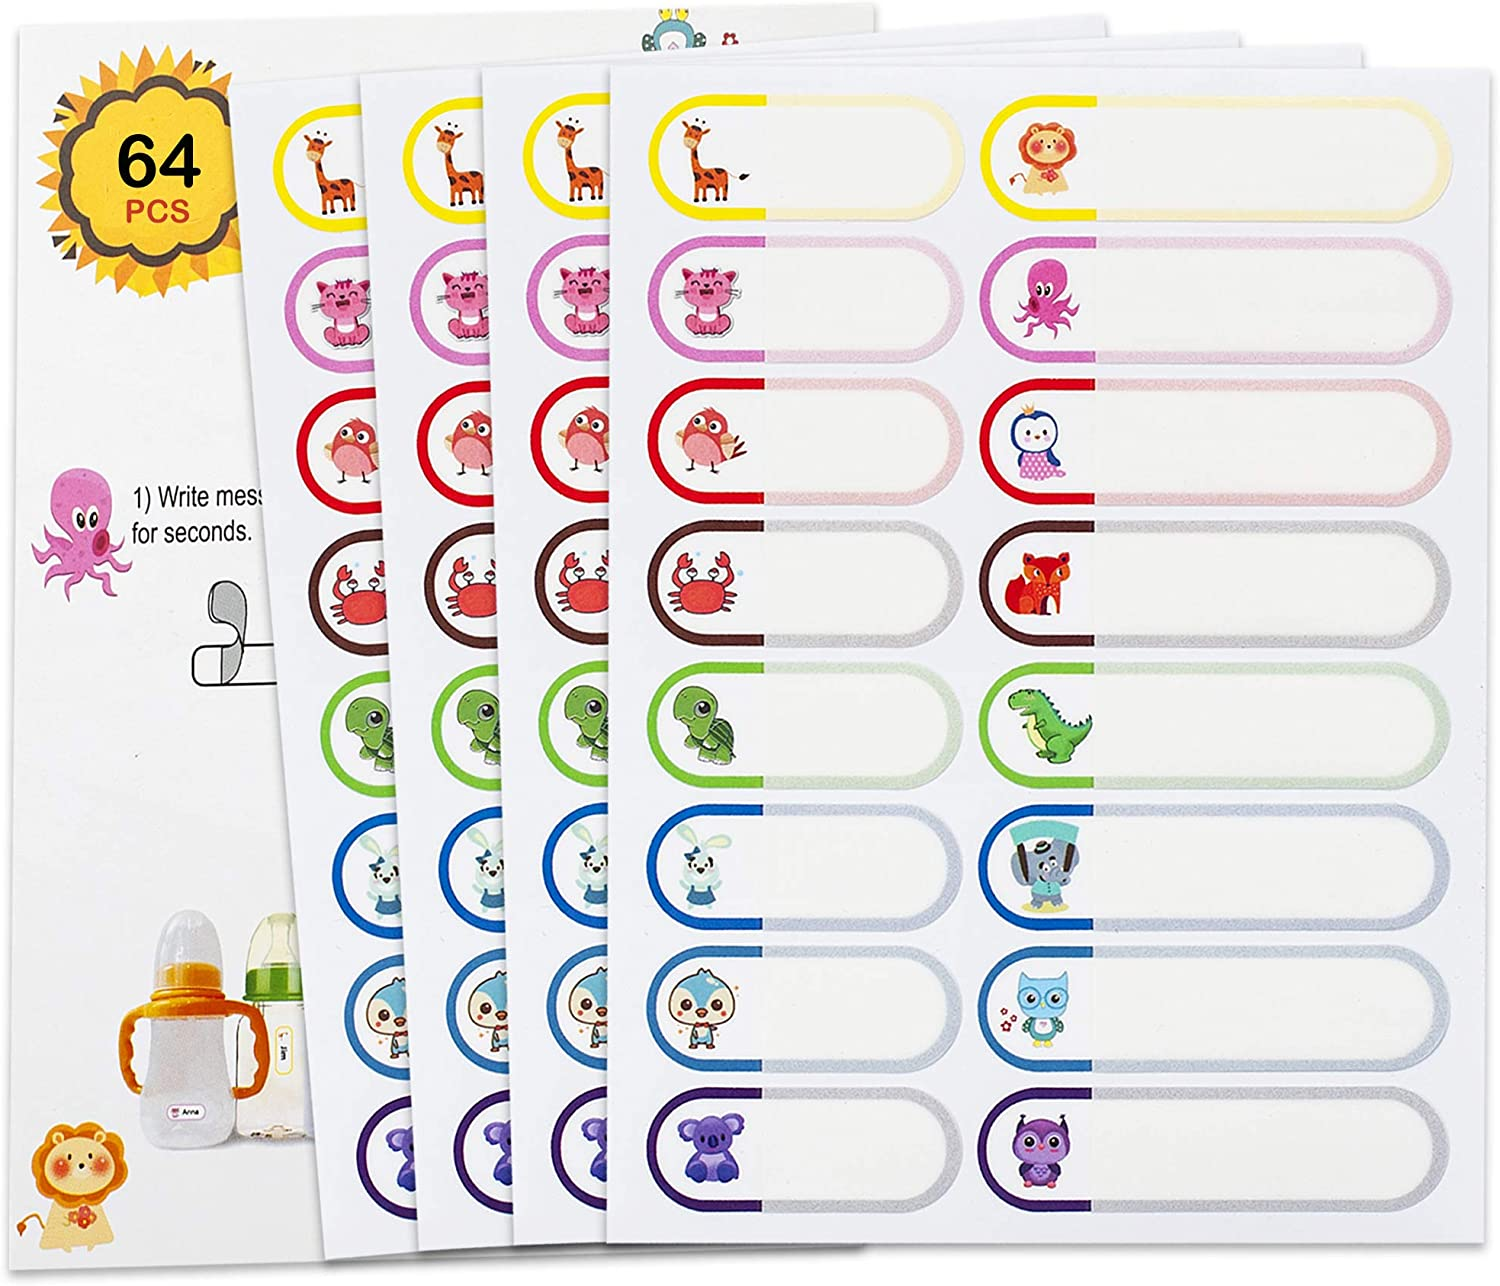 64pcs Baby Bottle Labels for Daycare, Self-Laminating Waterproof Write-On Name Labels, Child Care Labels, Kids Name Tag Label Stickers for School Supply Water Bottle, Freezer Dishwasher Safe